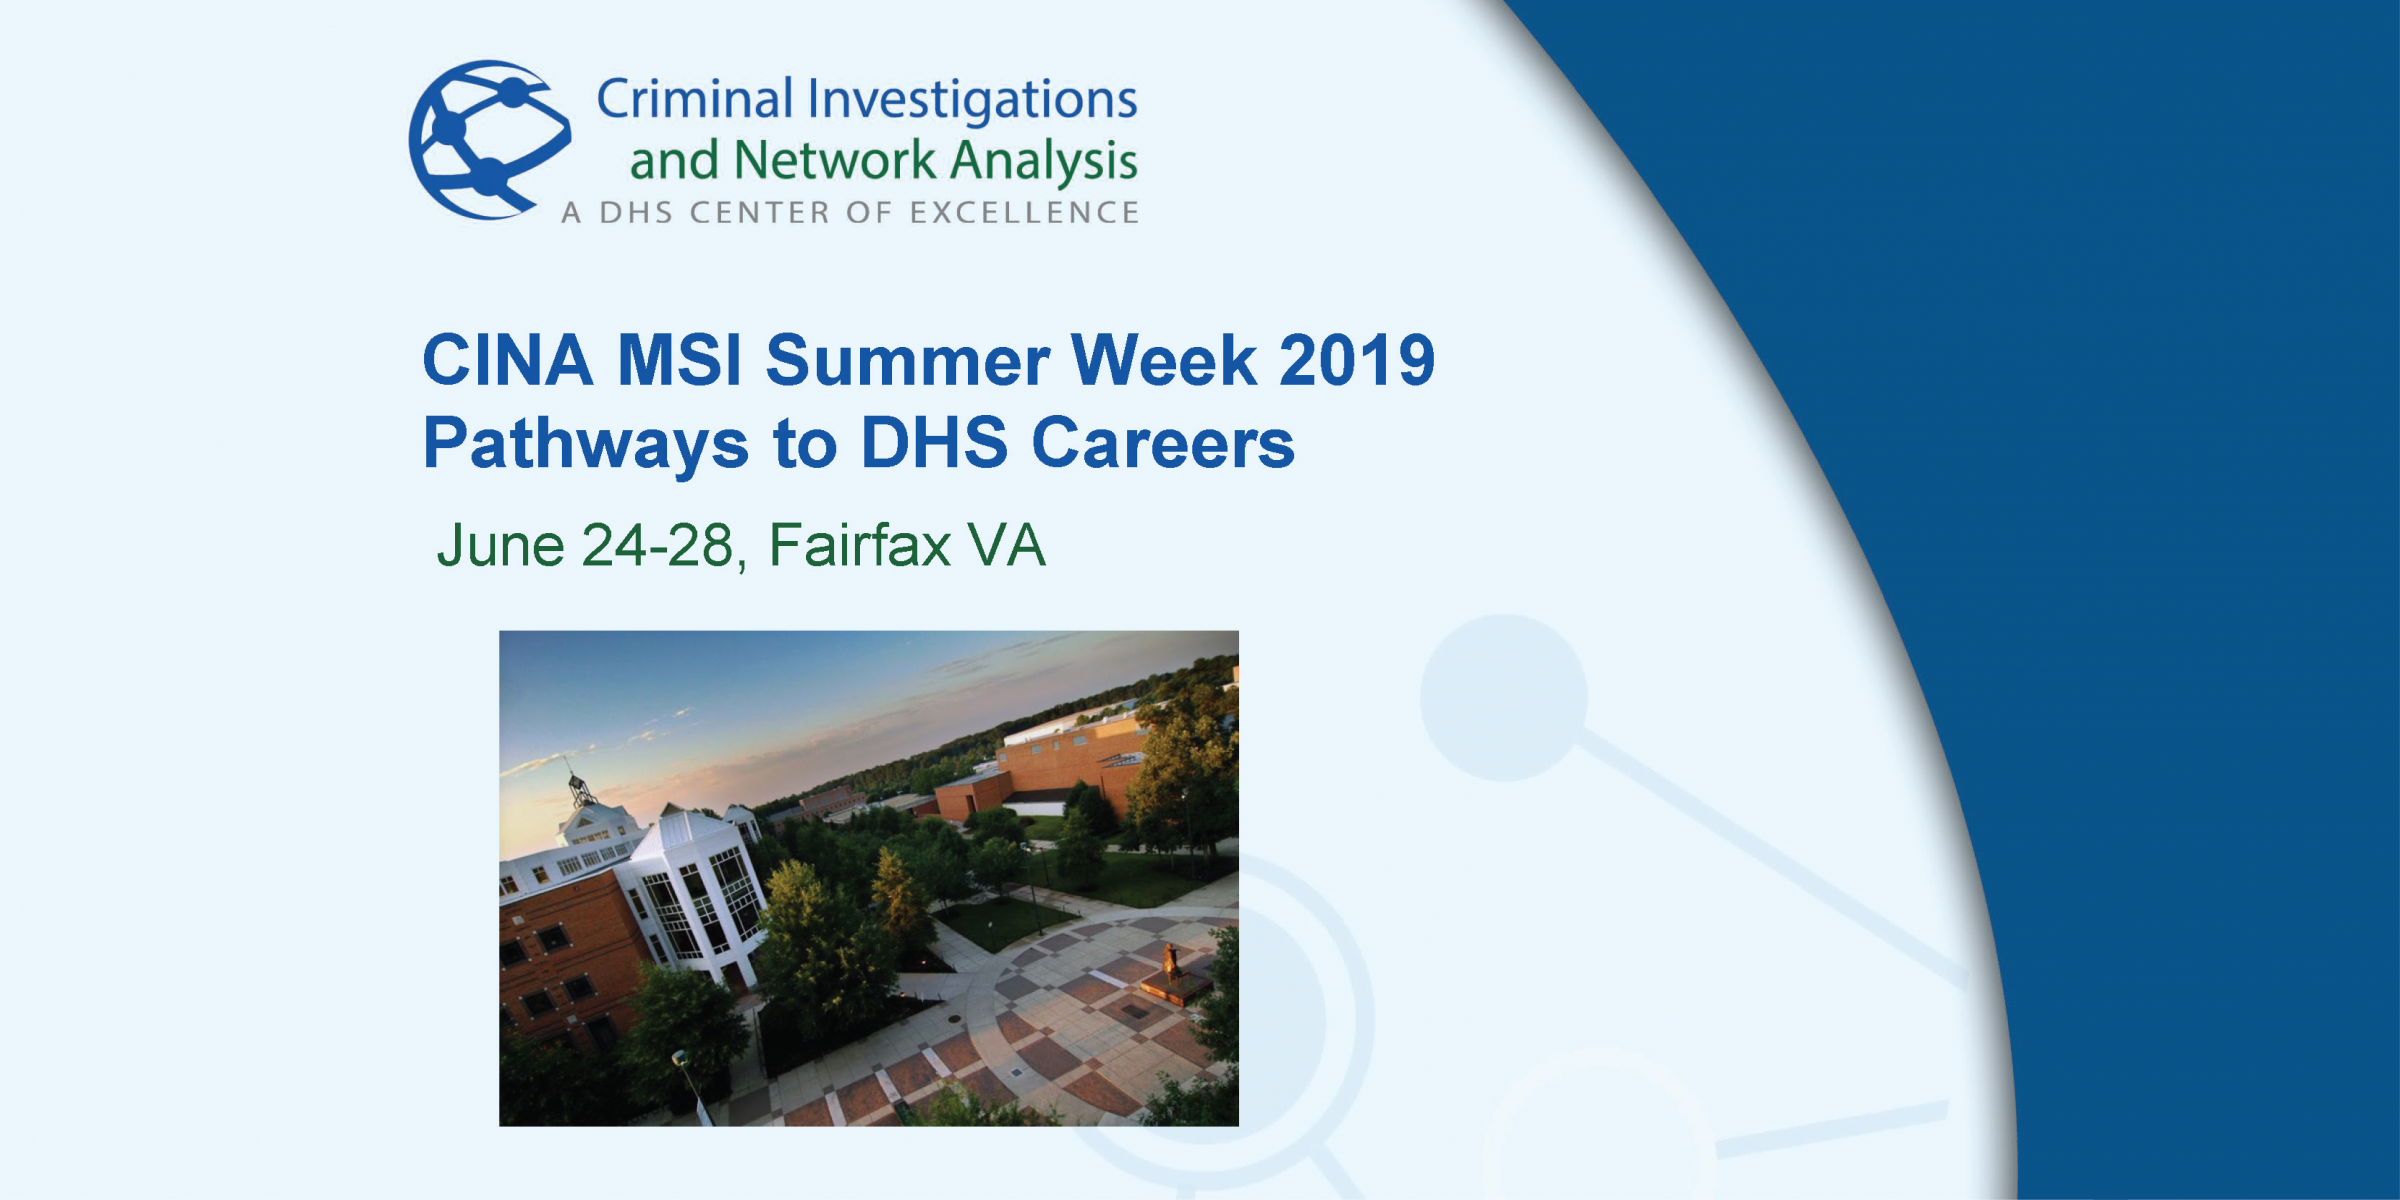 Criminal Investigations and Network Analysis. A DHS Center of Excellence. CINA MSI Summer Week 2019. Pathways to DHS Careers. June 24-28, Fairfax, Va. Graphic of university quad.